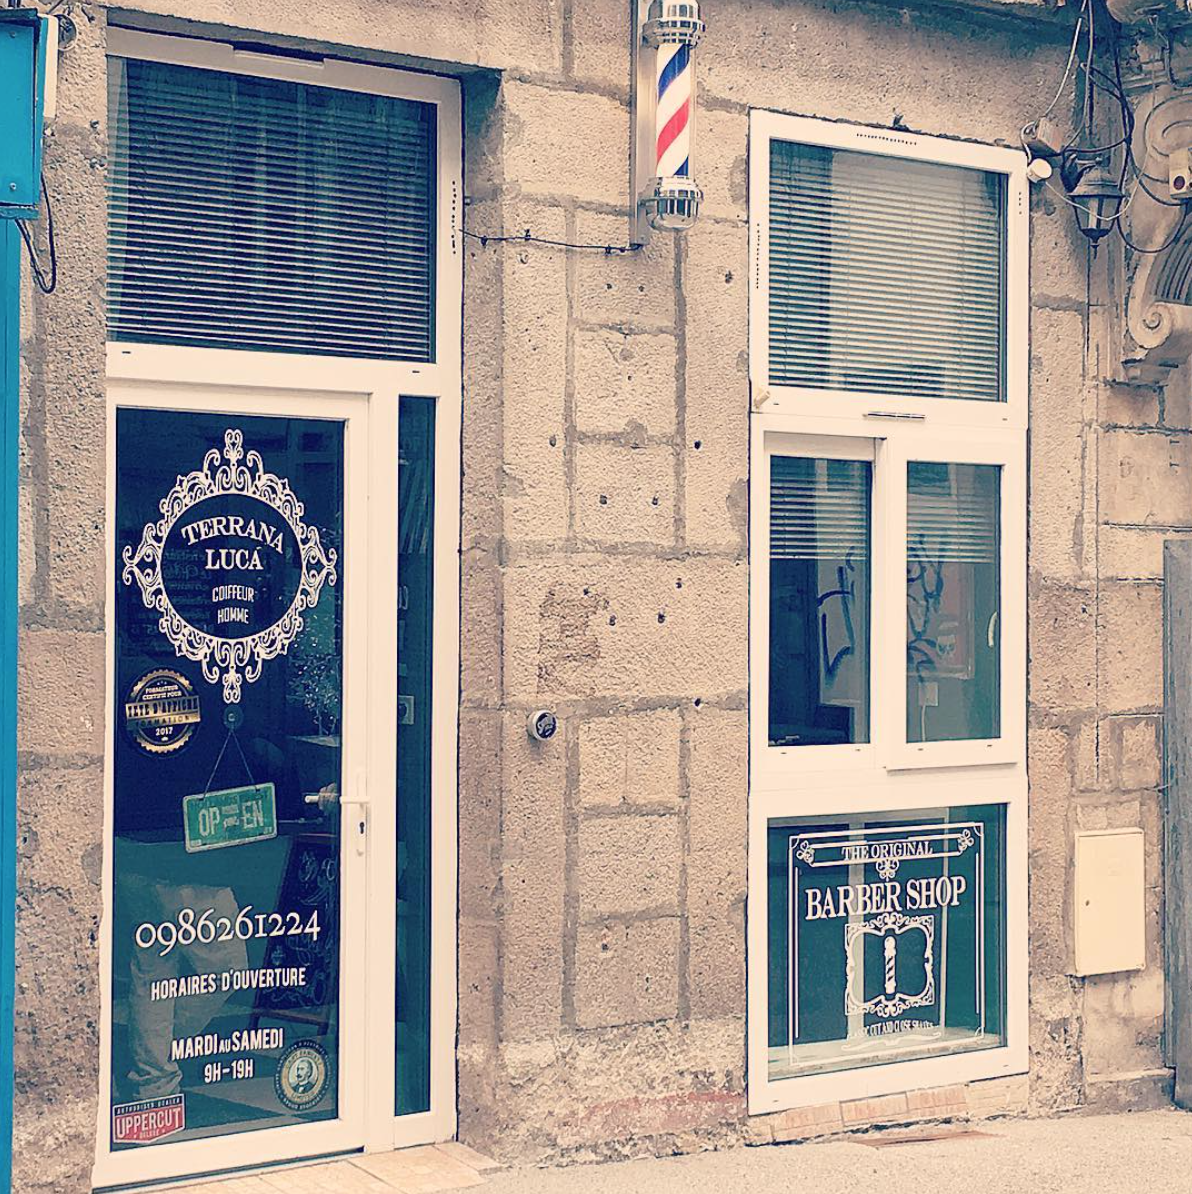 original barber shop saint-etienne